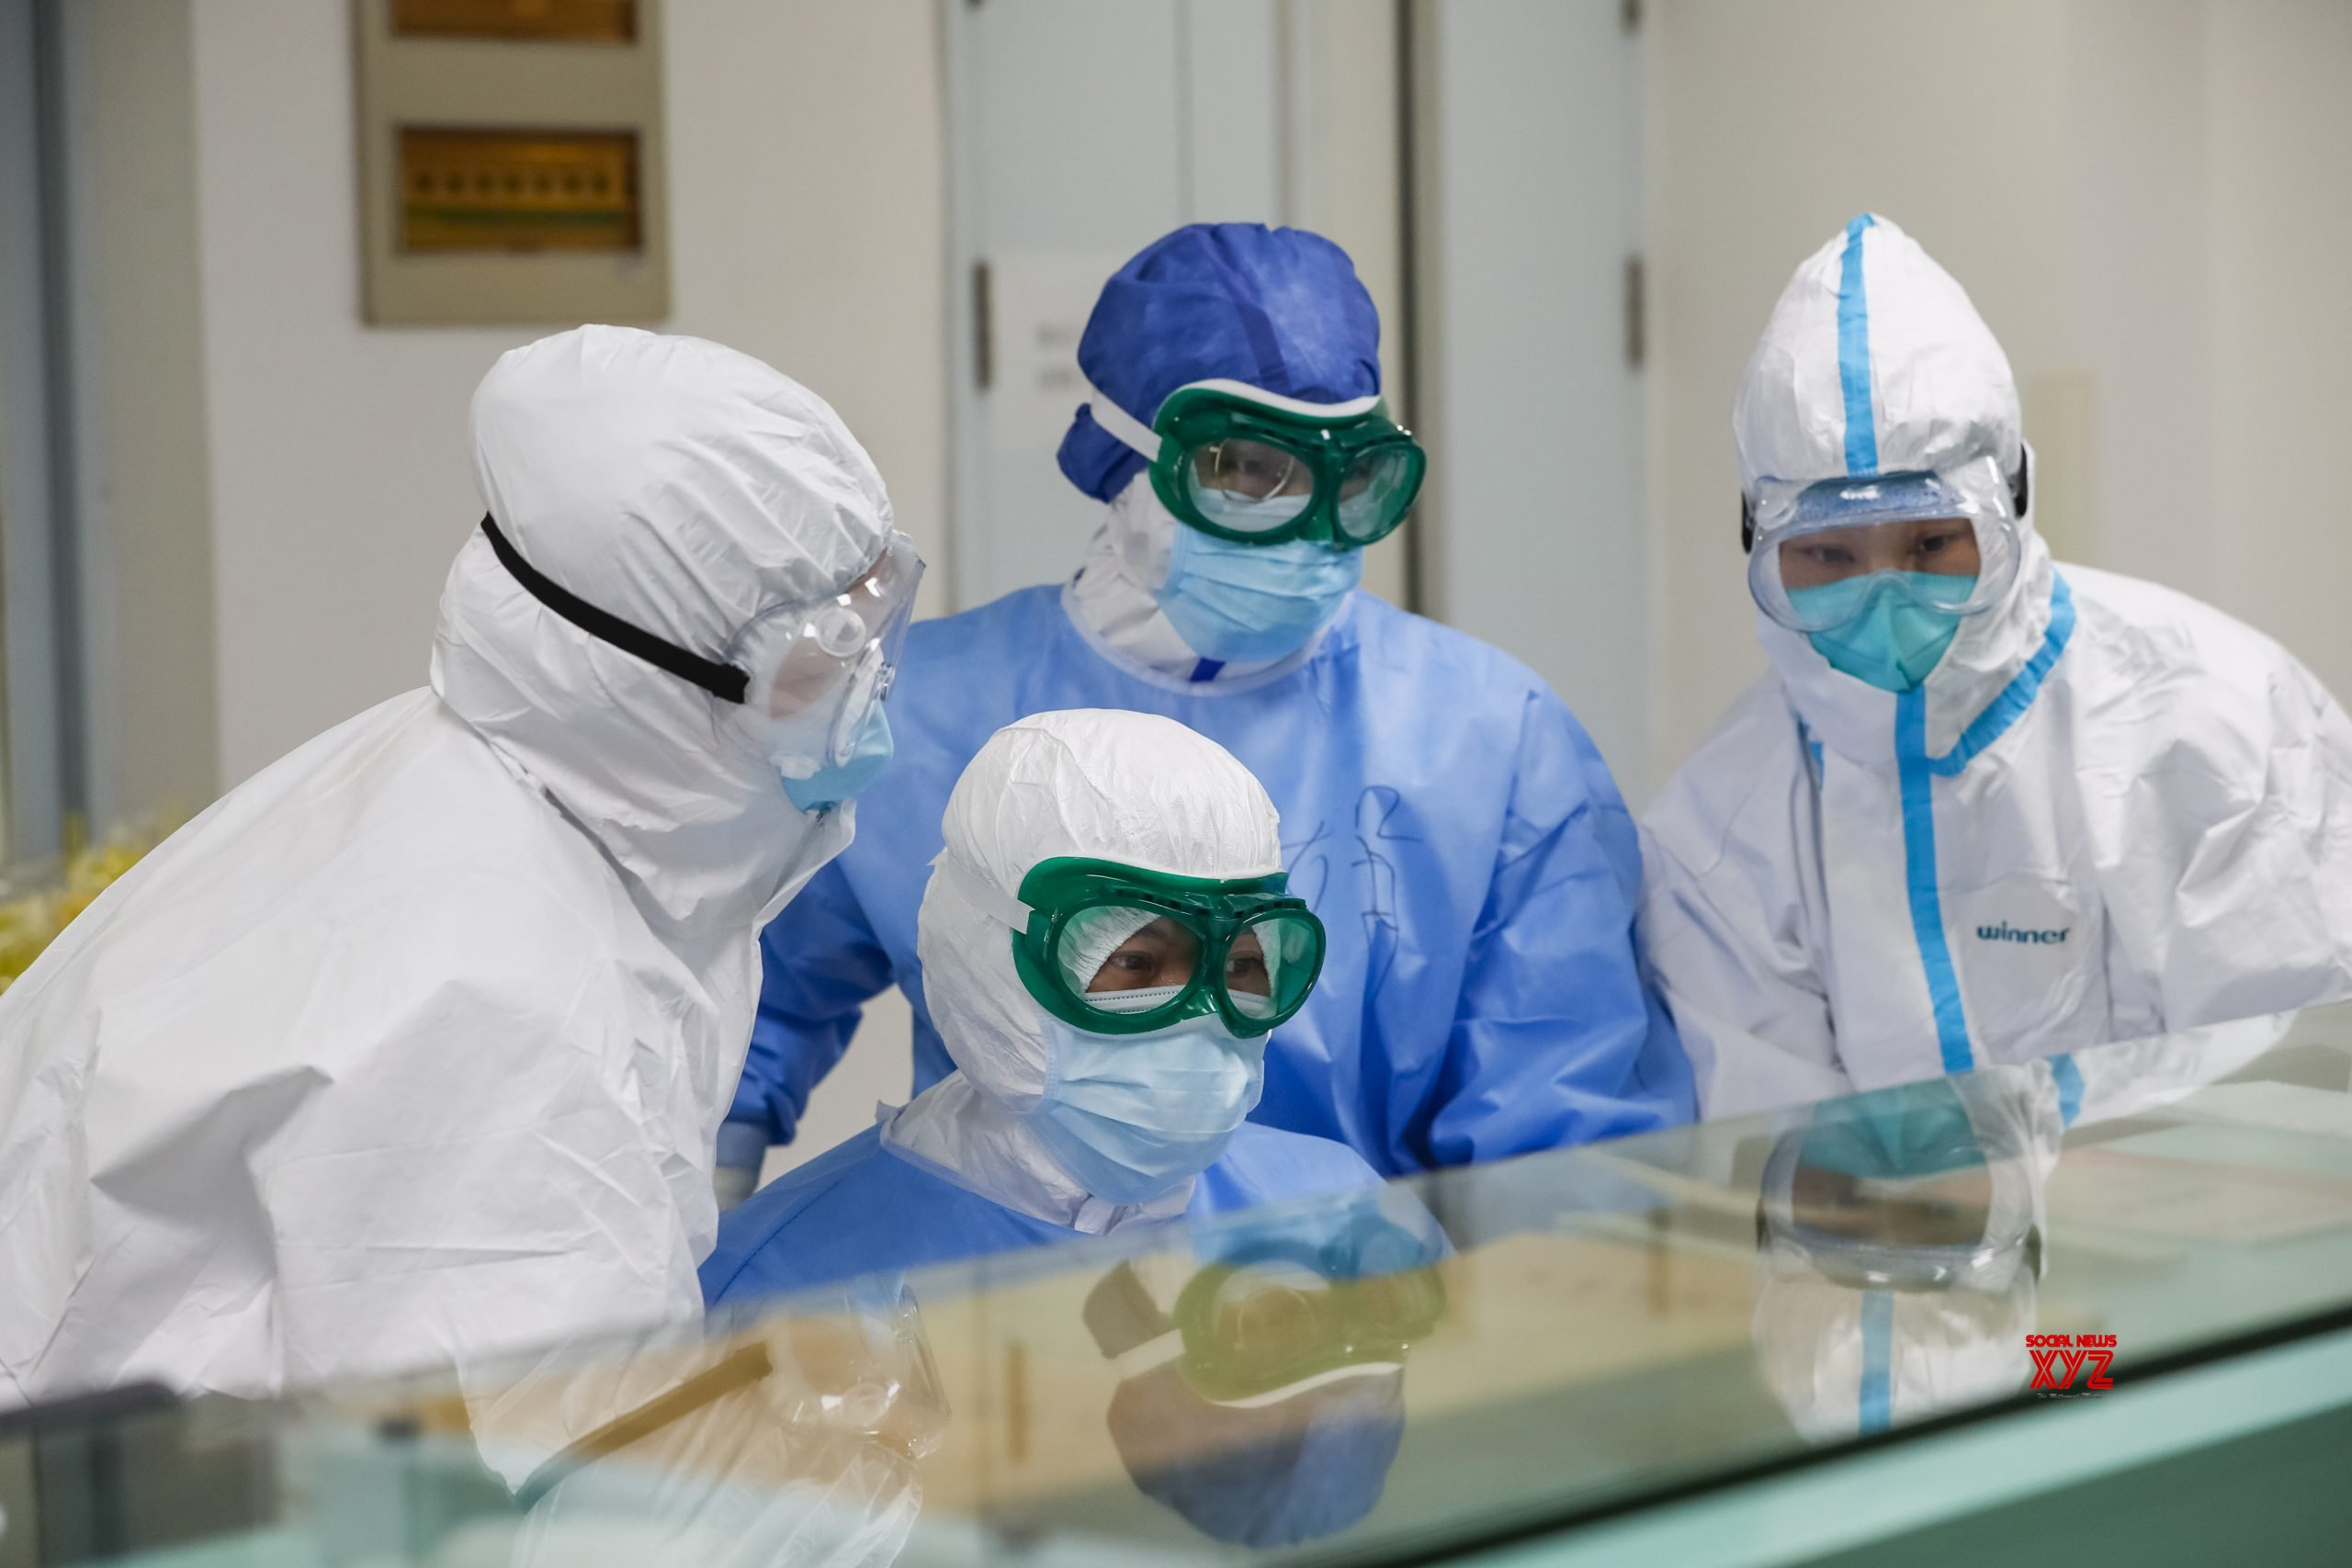 Wuhan: No new coronavirus cases for 2nd straight day